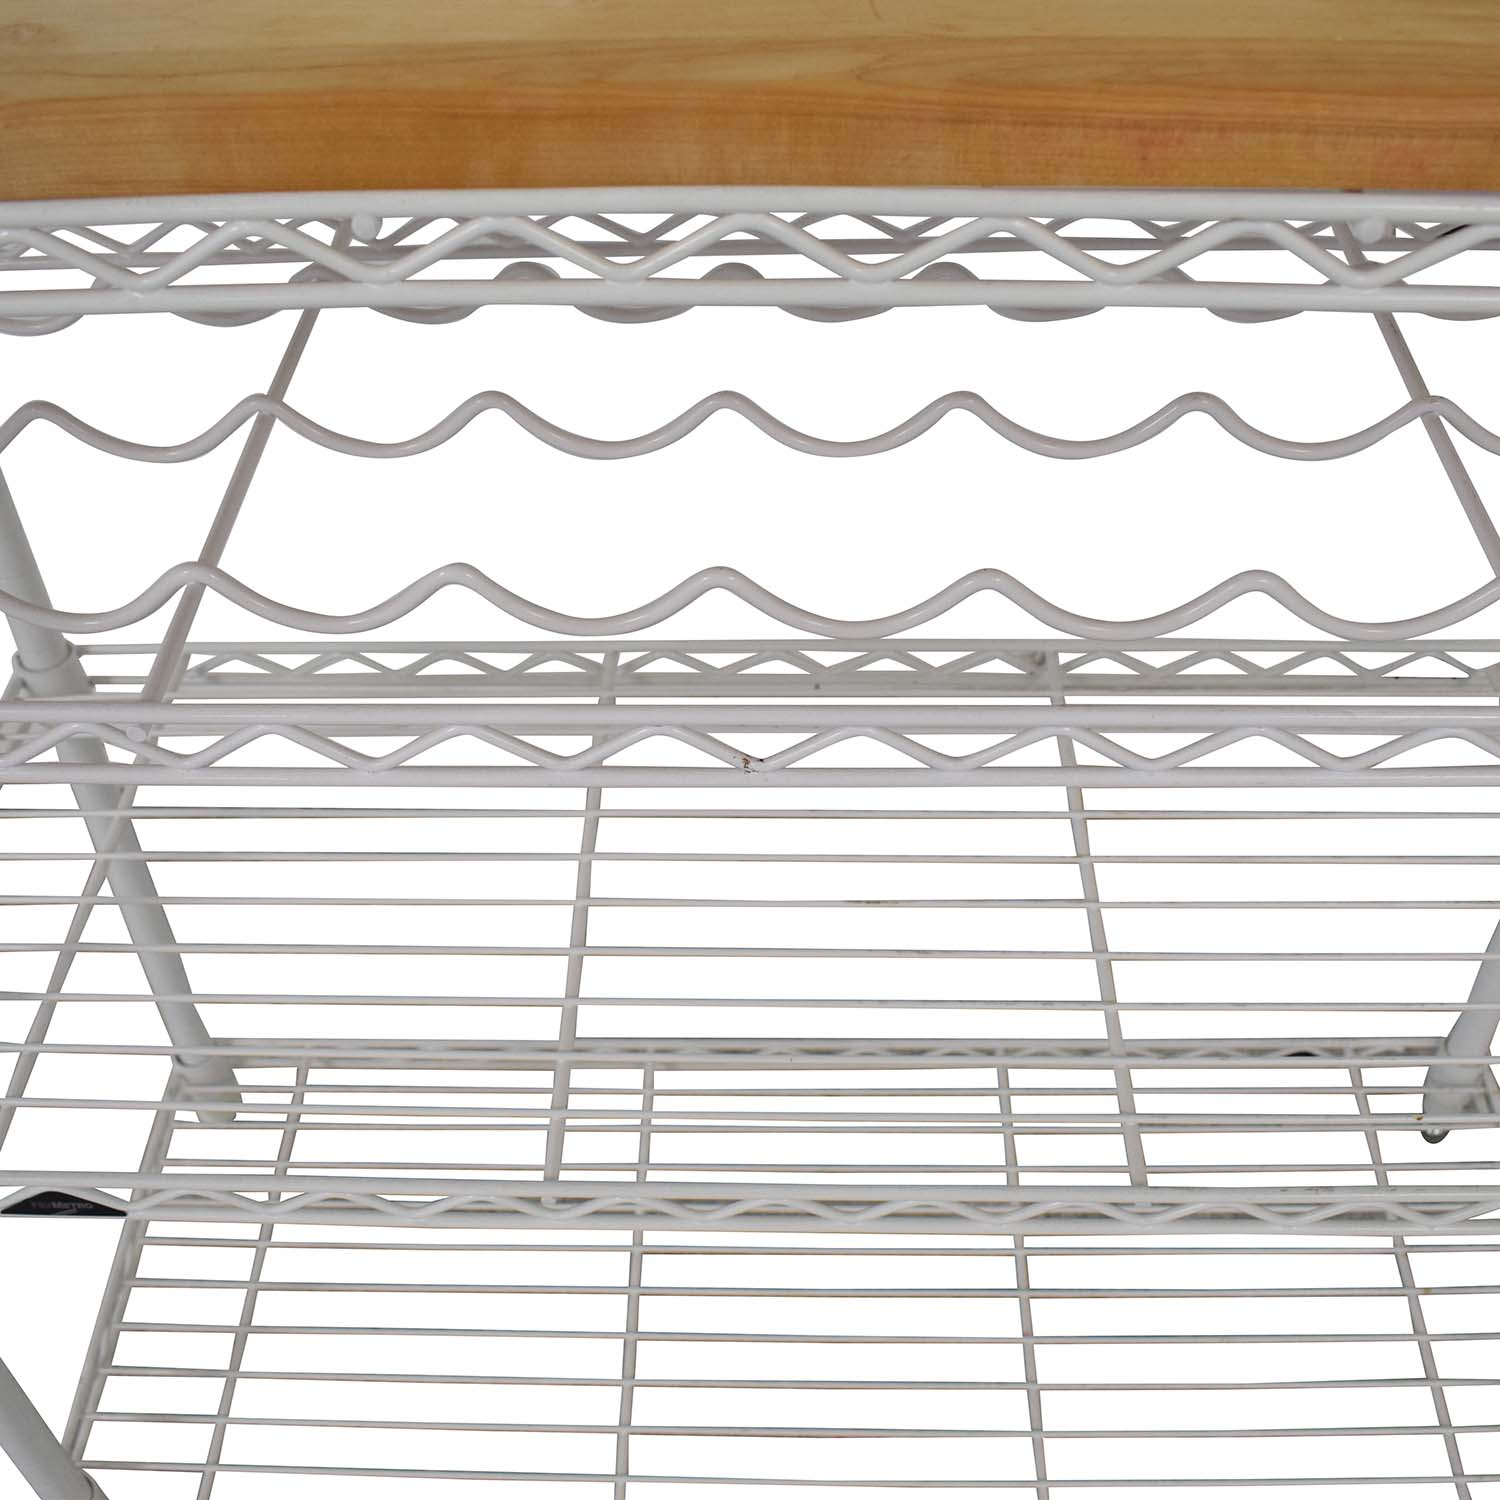 The Container Store The Container Store InterMetro Baker's Rack price